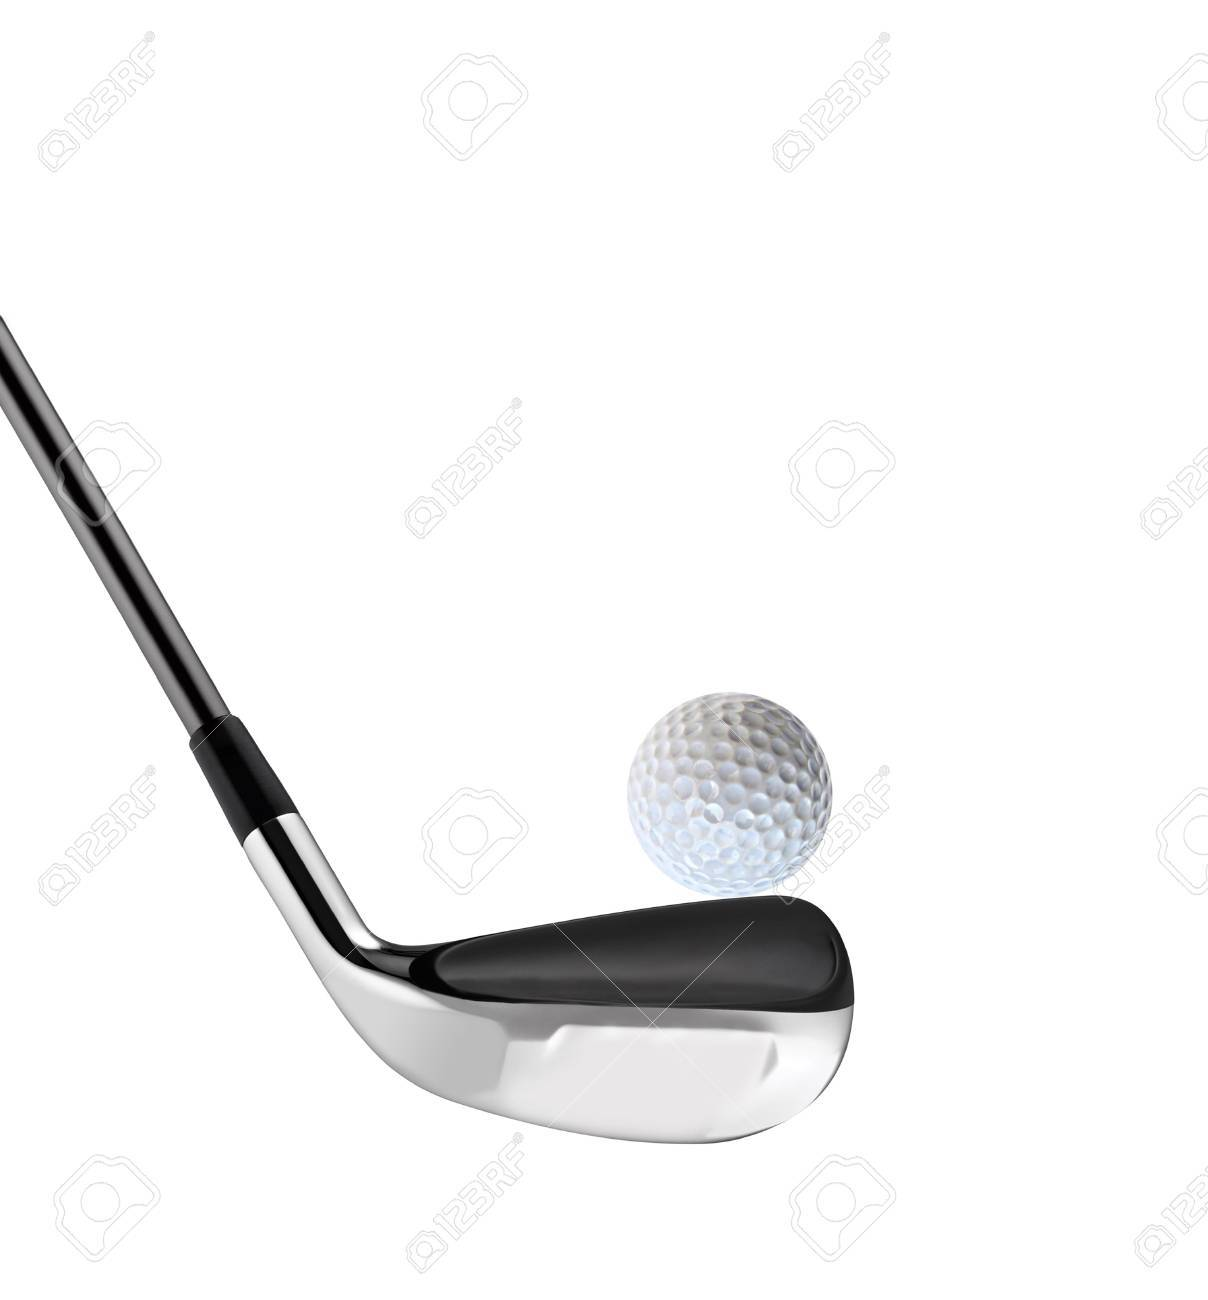 1208x1300 Golf Clubs Stock Photo, Picture And Royalty Free Image. Image